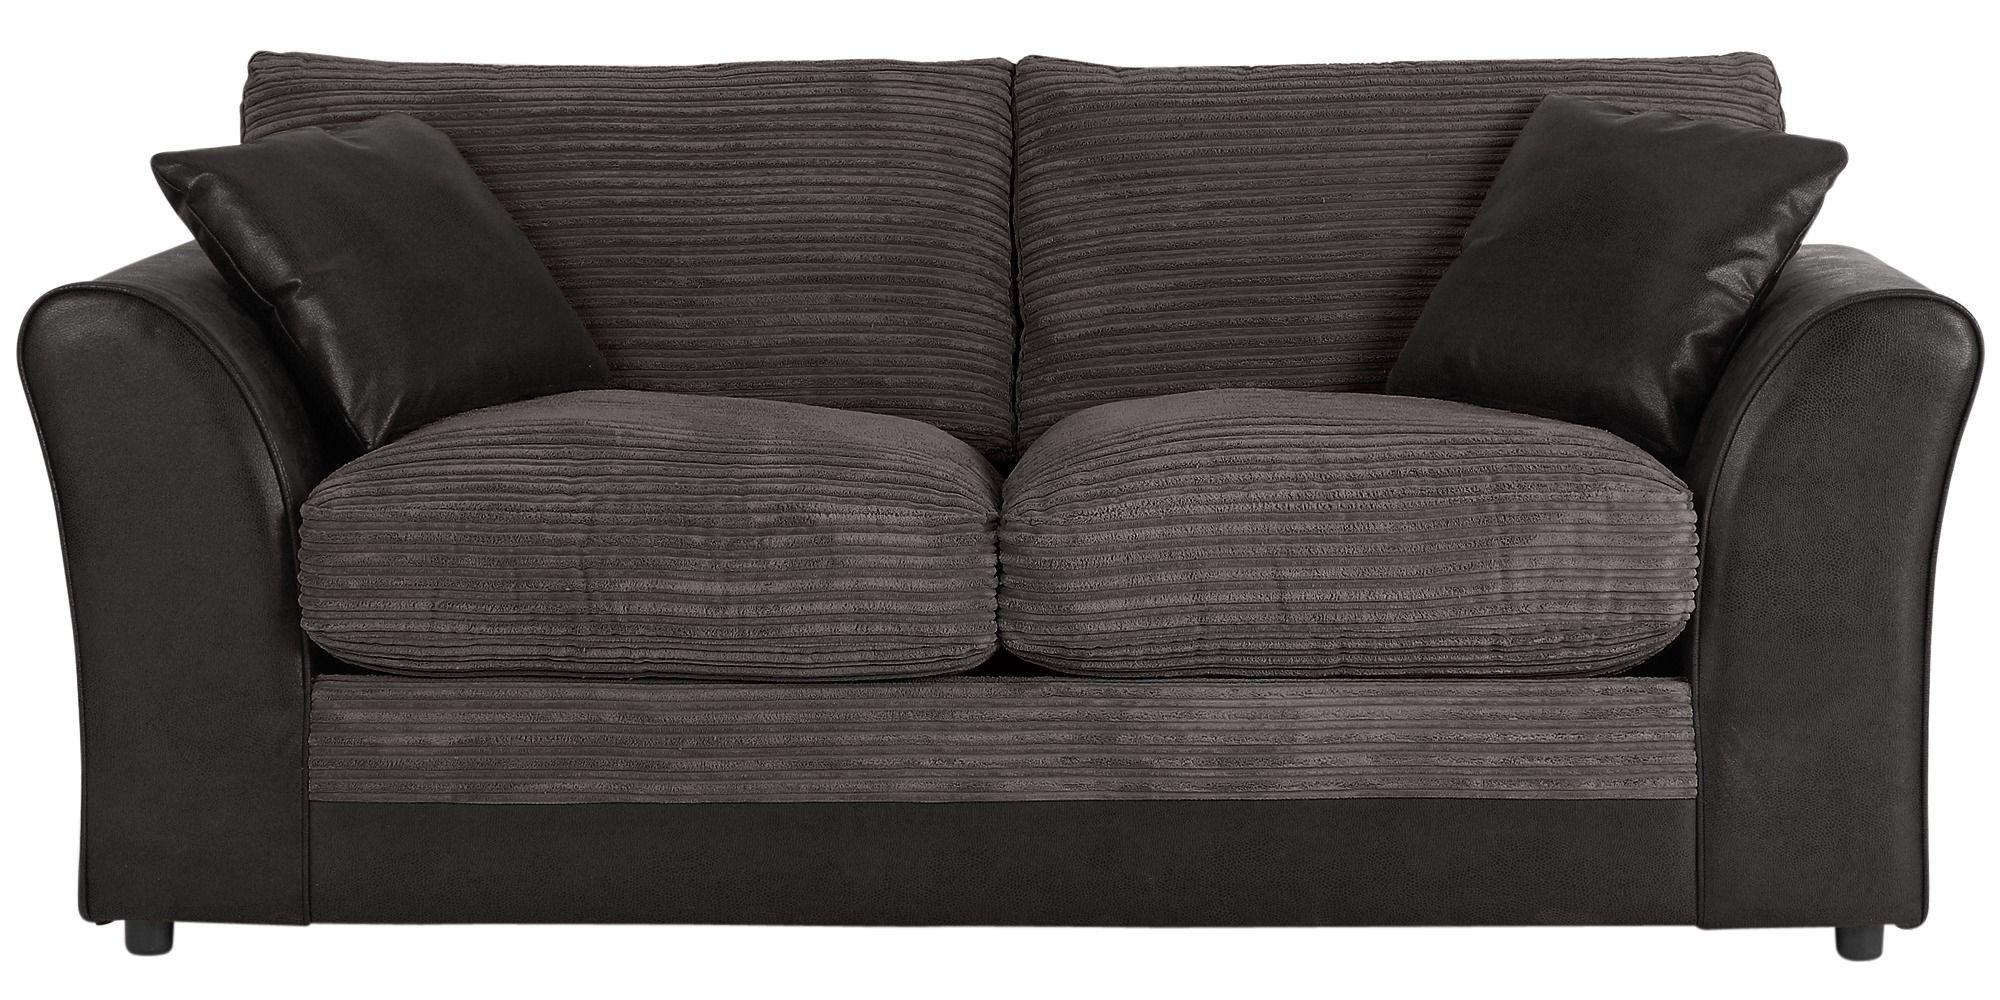 sofa beds chair and futons argos page 3 sofa beds argos   1025theparty    rh   1025theparty